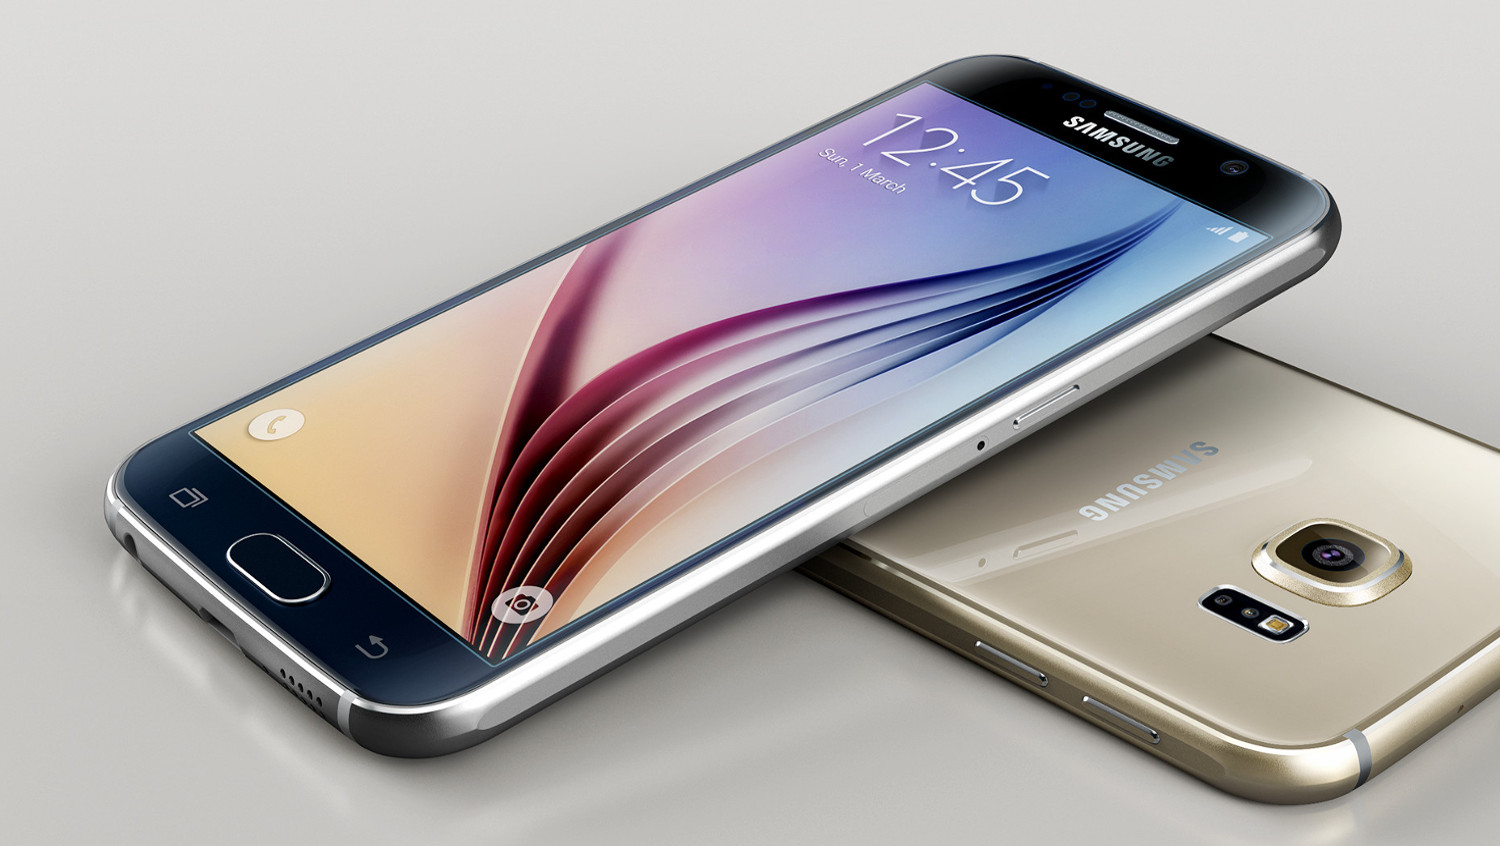 Samsung Galaxy S7 – Full Specifications